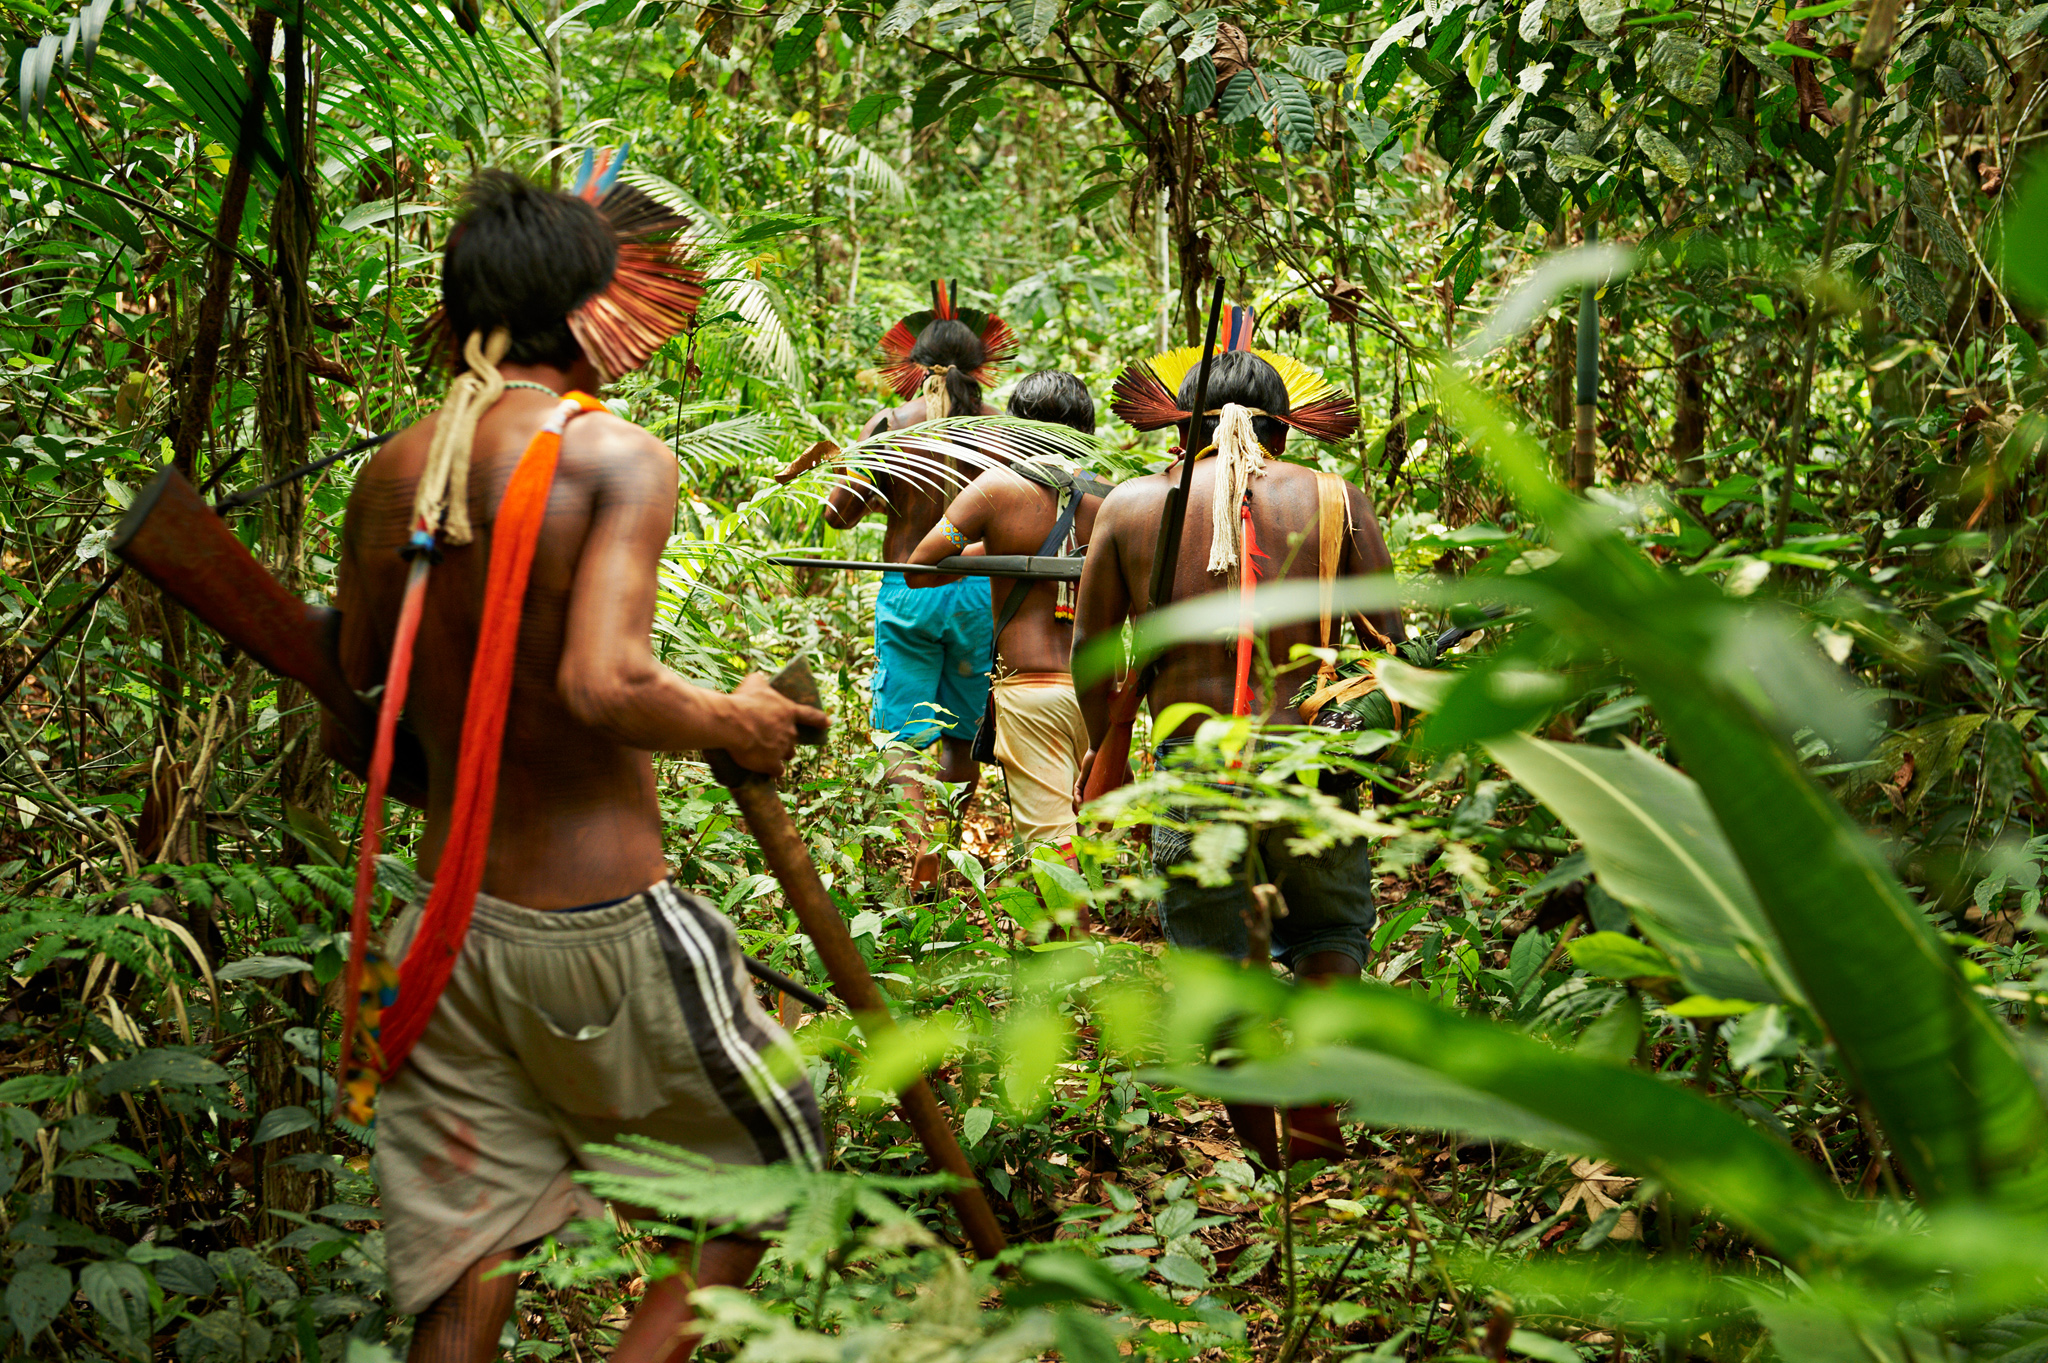 AN Amerindian group called the Kayapo has protected an a vast Amazon ecosystem against a crushing wave of development their tribal lands are the largest tract of protected tropical forest in the world. In contrast to stories of indigenous people exploited by the extraction of resources from their territories, the Kayapo offer a remarkable success story.. Their success is a direct result of who they are: warriors, whose strong sense of community and ritual traditions has allowed them to protest, pressure...and prevail. At the start of 2011, the Brazilian government approved the $17 million construction of the Belo Monte dam on the Xingu River. Projected to be the world's third-largest hydroelectric dam, the project has faced fierce opposition by the Kayapo, environmentalists, and international figures.